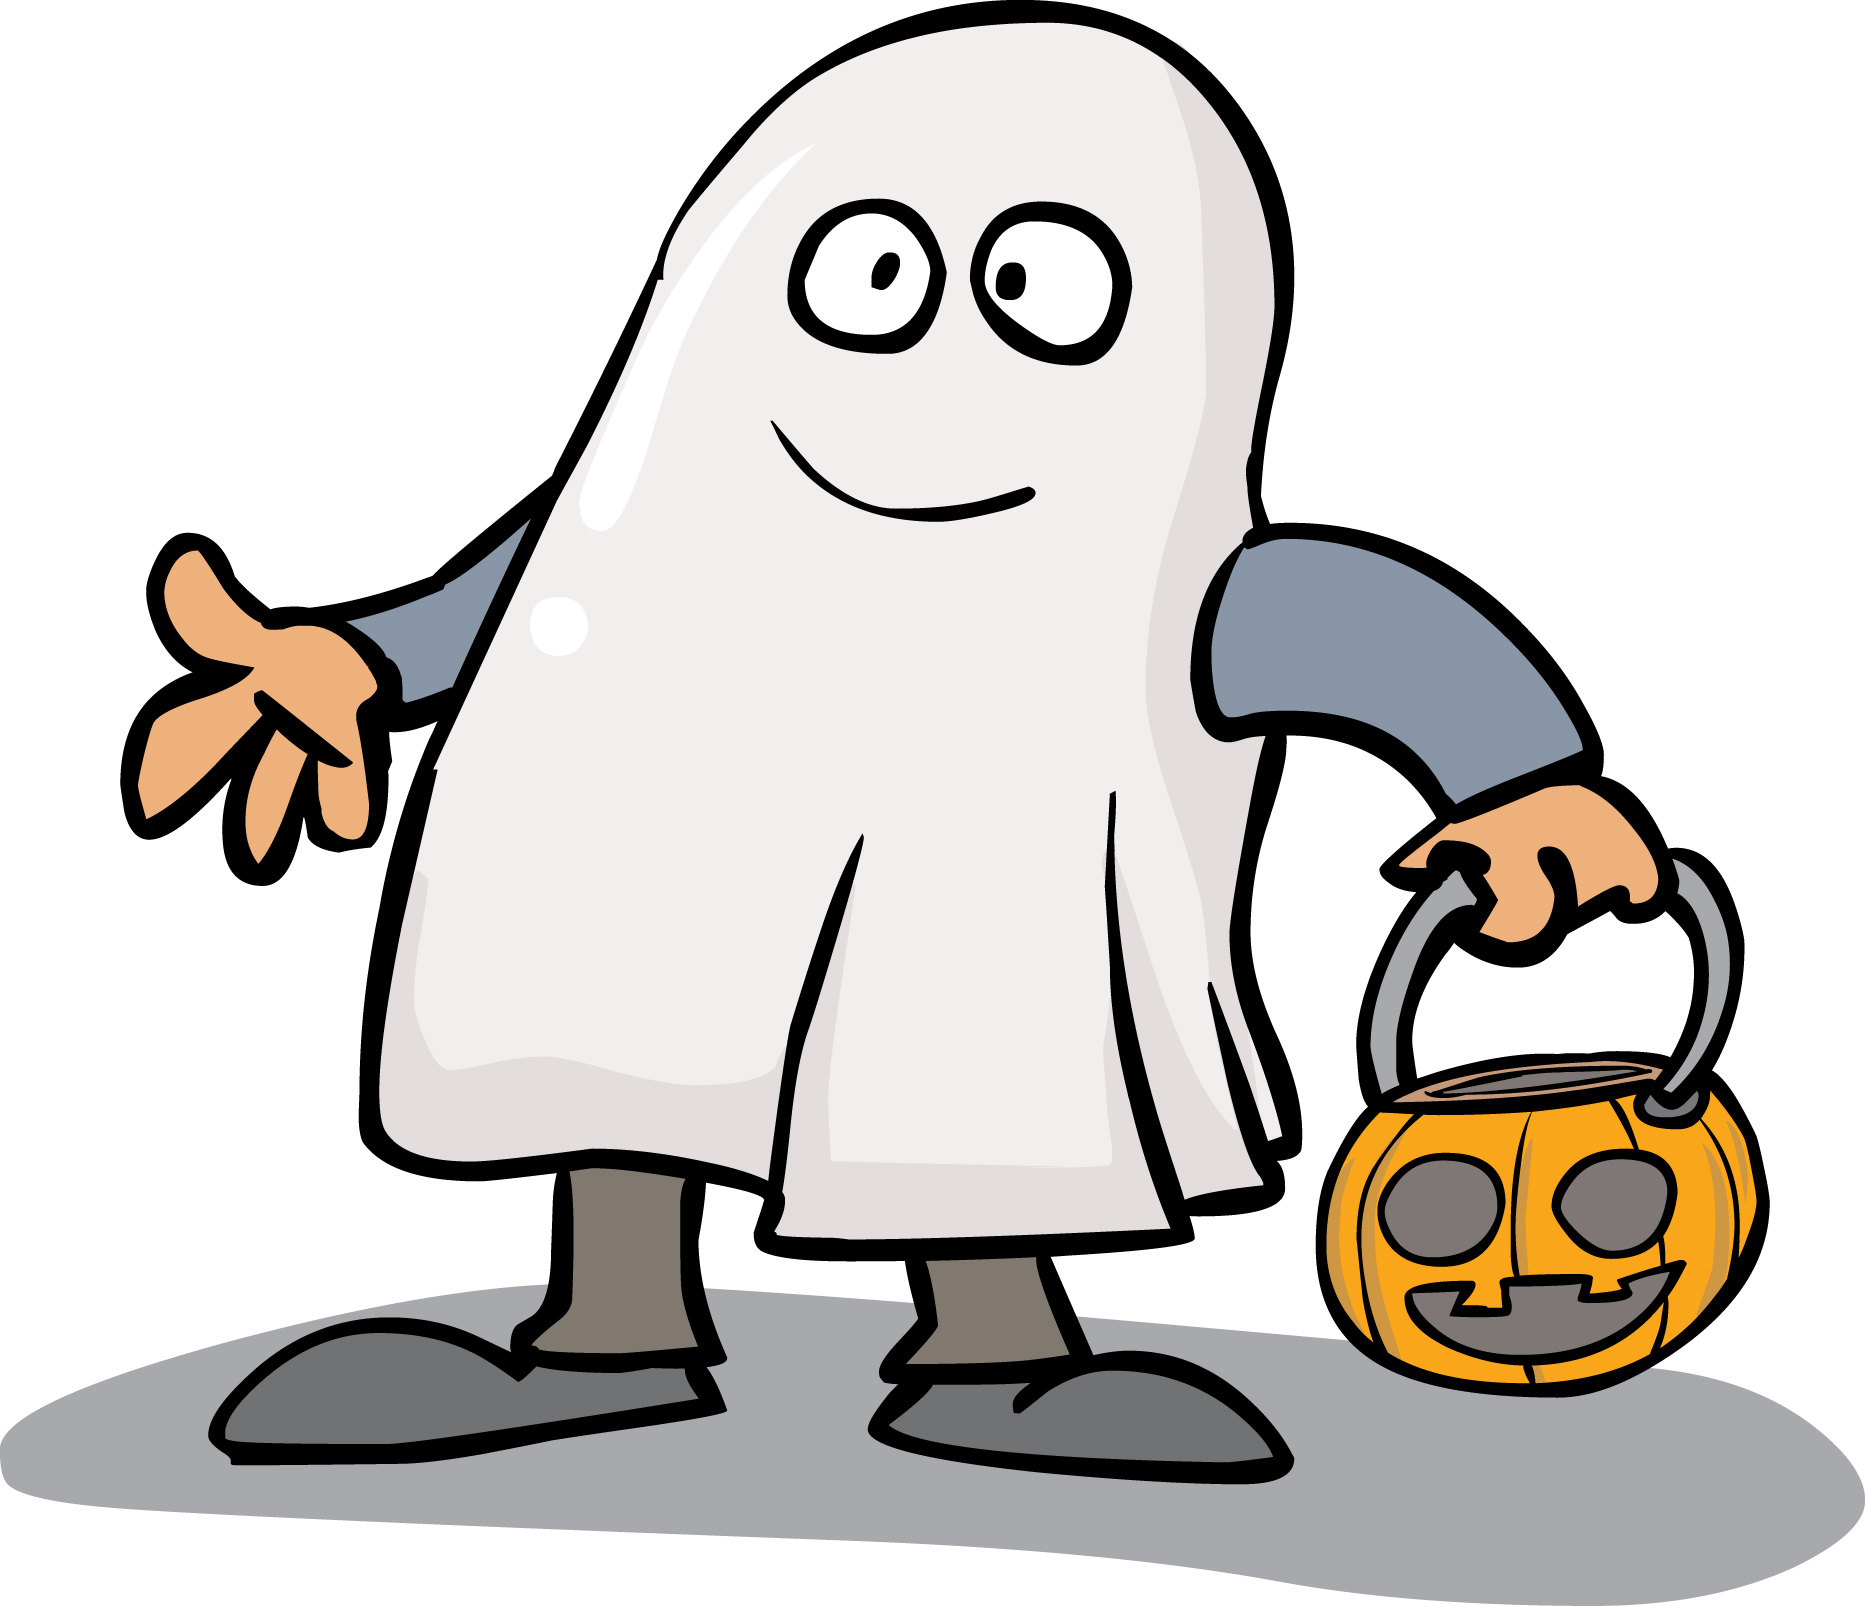 halloween image clipart - photo #40